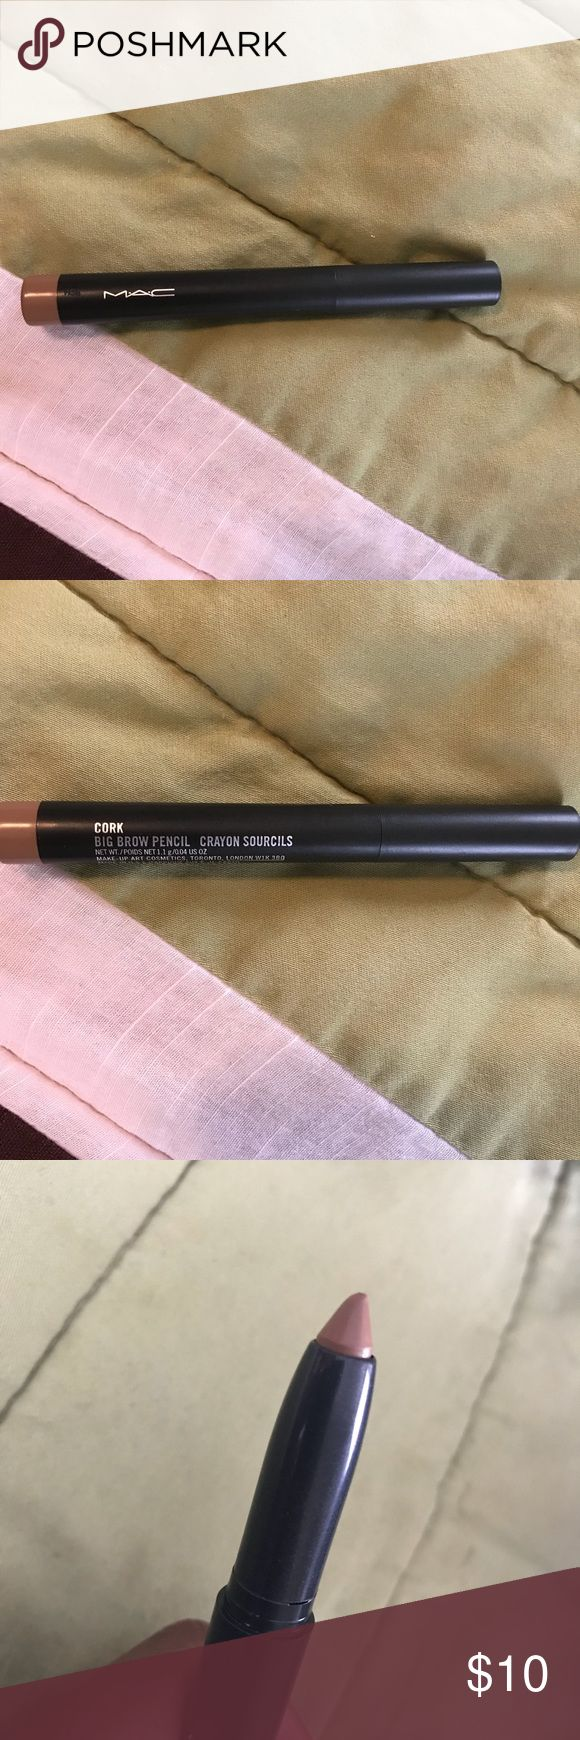 MAC Eyebrow Pencil- Cork MAC Big Brow Pencil in the shade Cork. It has been gently swatched on skin, but never used. MAC Cosmetics Makeup Eyebrow Filler